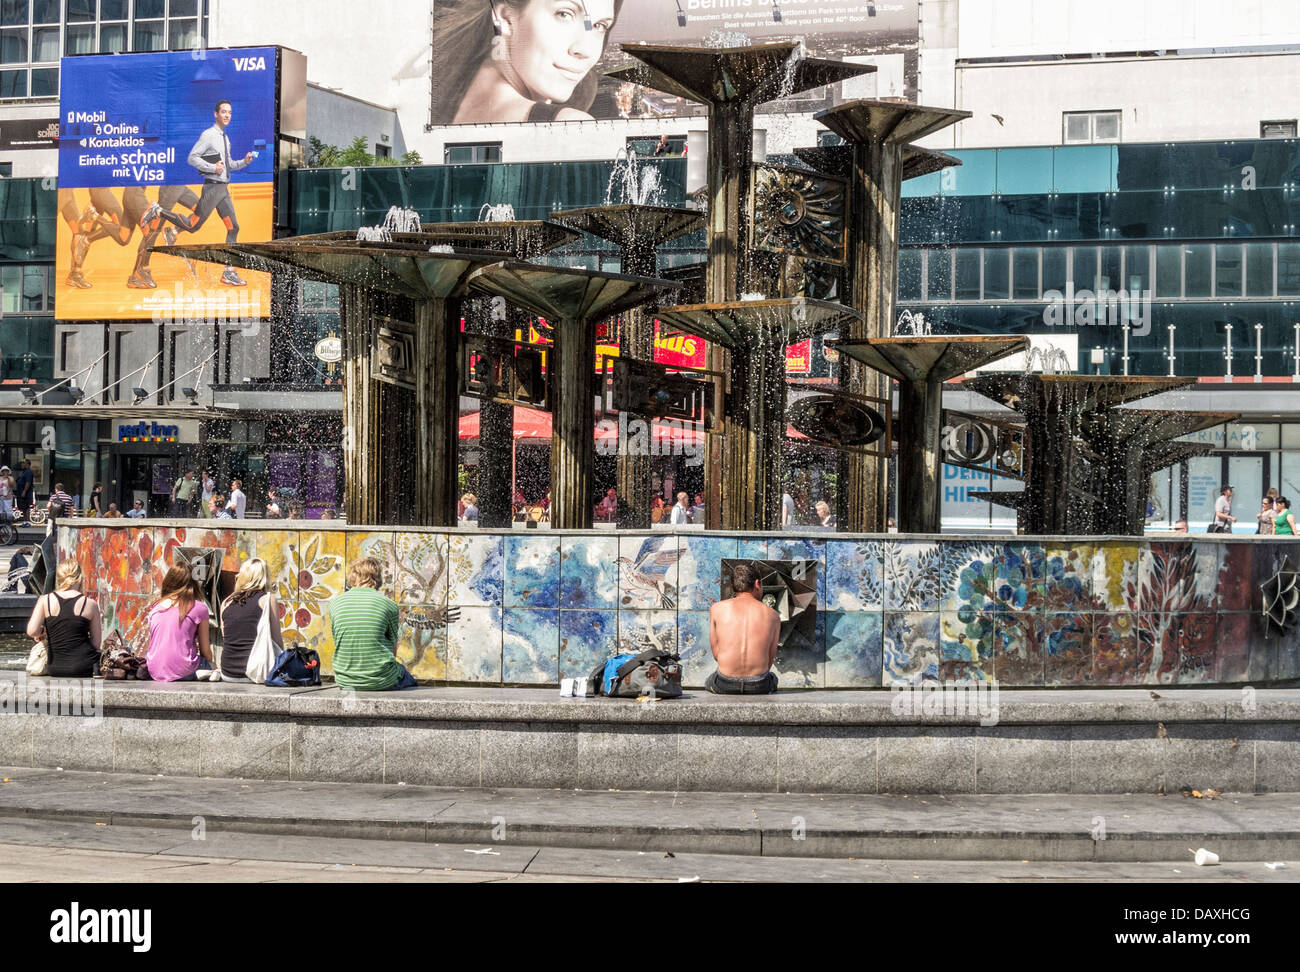 People cooling off at the 'Fountain of International Friendship' during the heatwave - Alexanderplatz, Mitte, - Stock Image